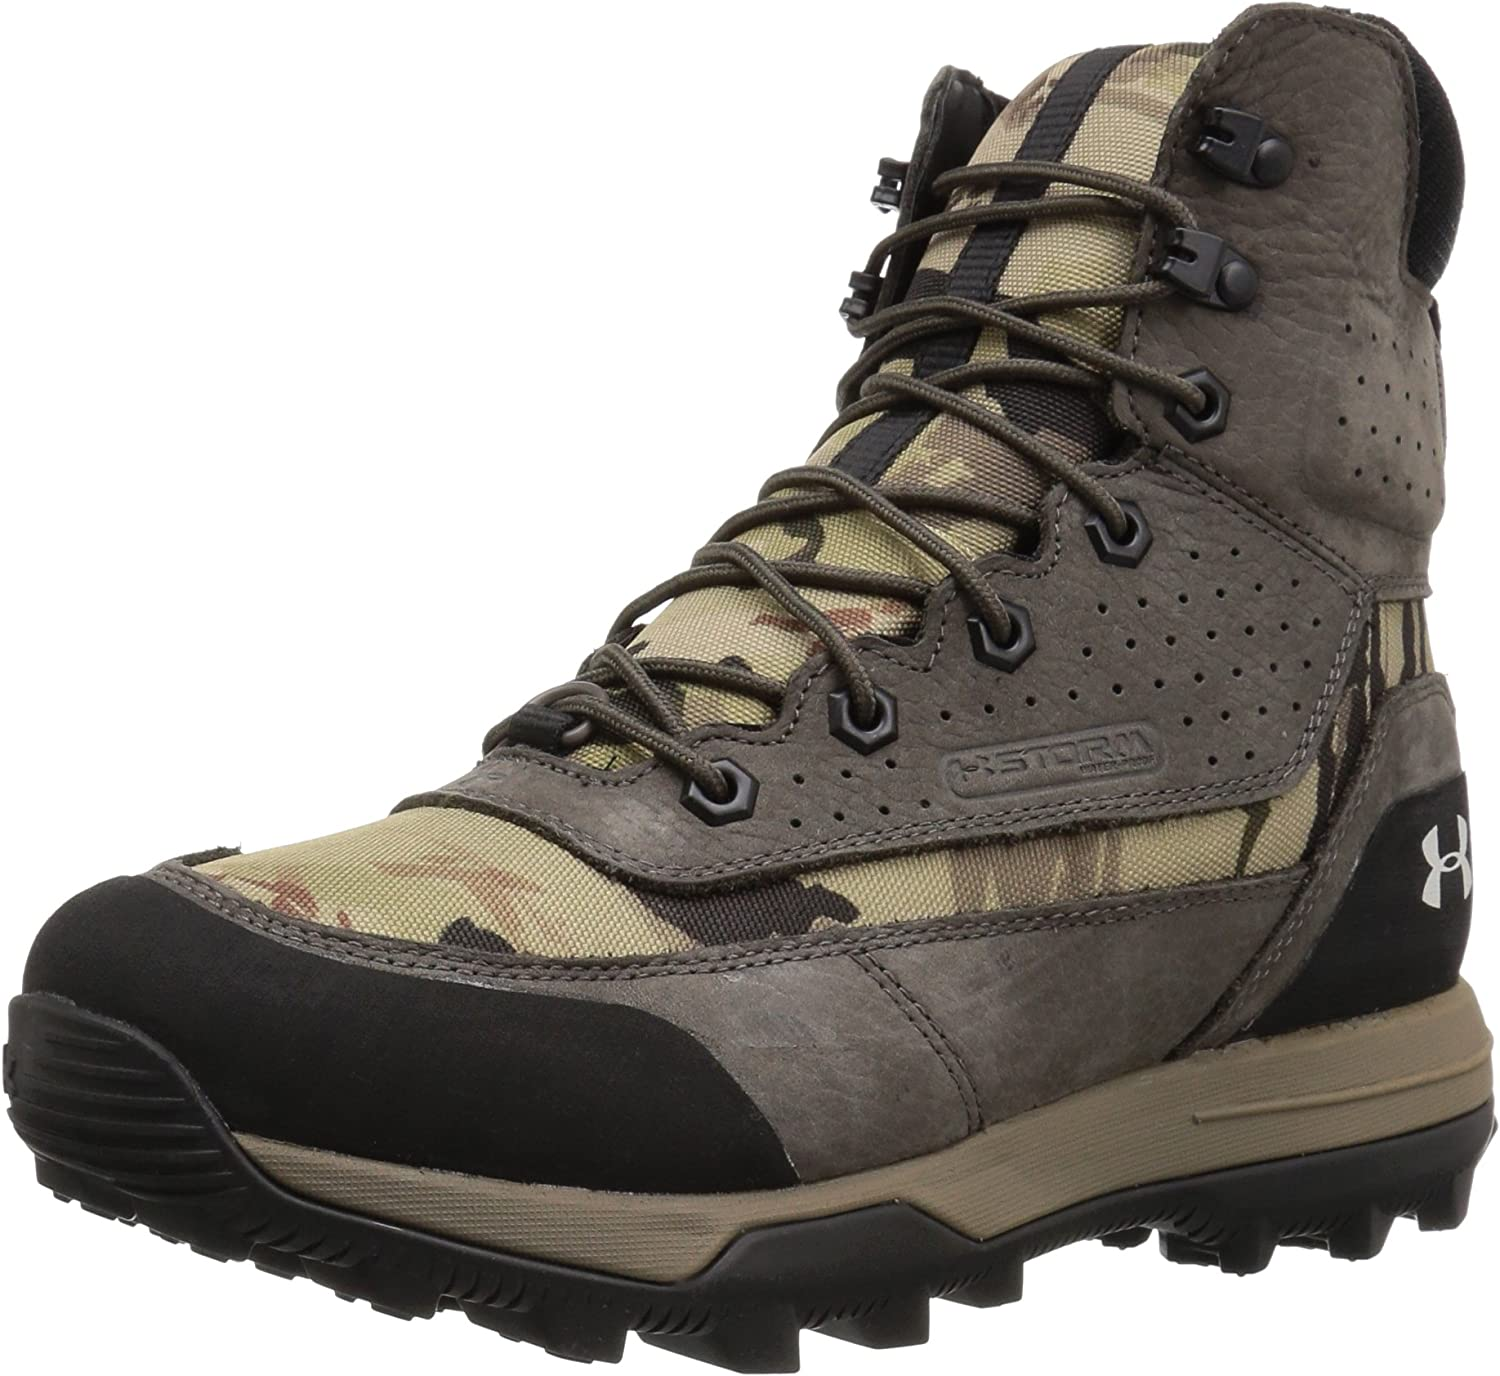 Under Armour Women's SF Bozeman 2.0 600G Hunting Shoe